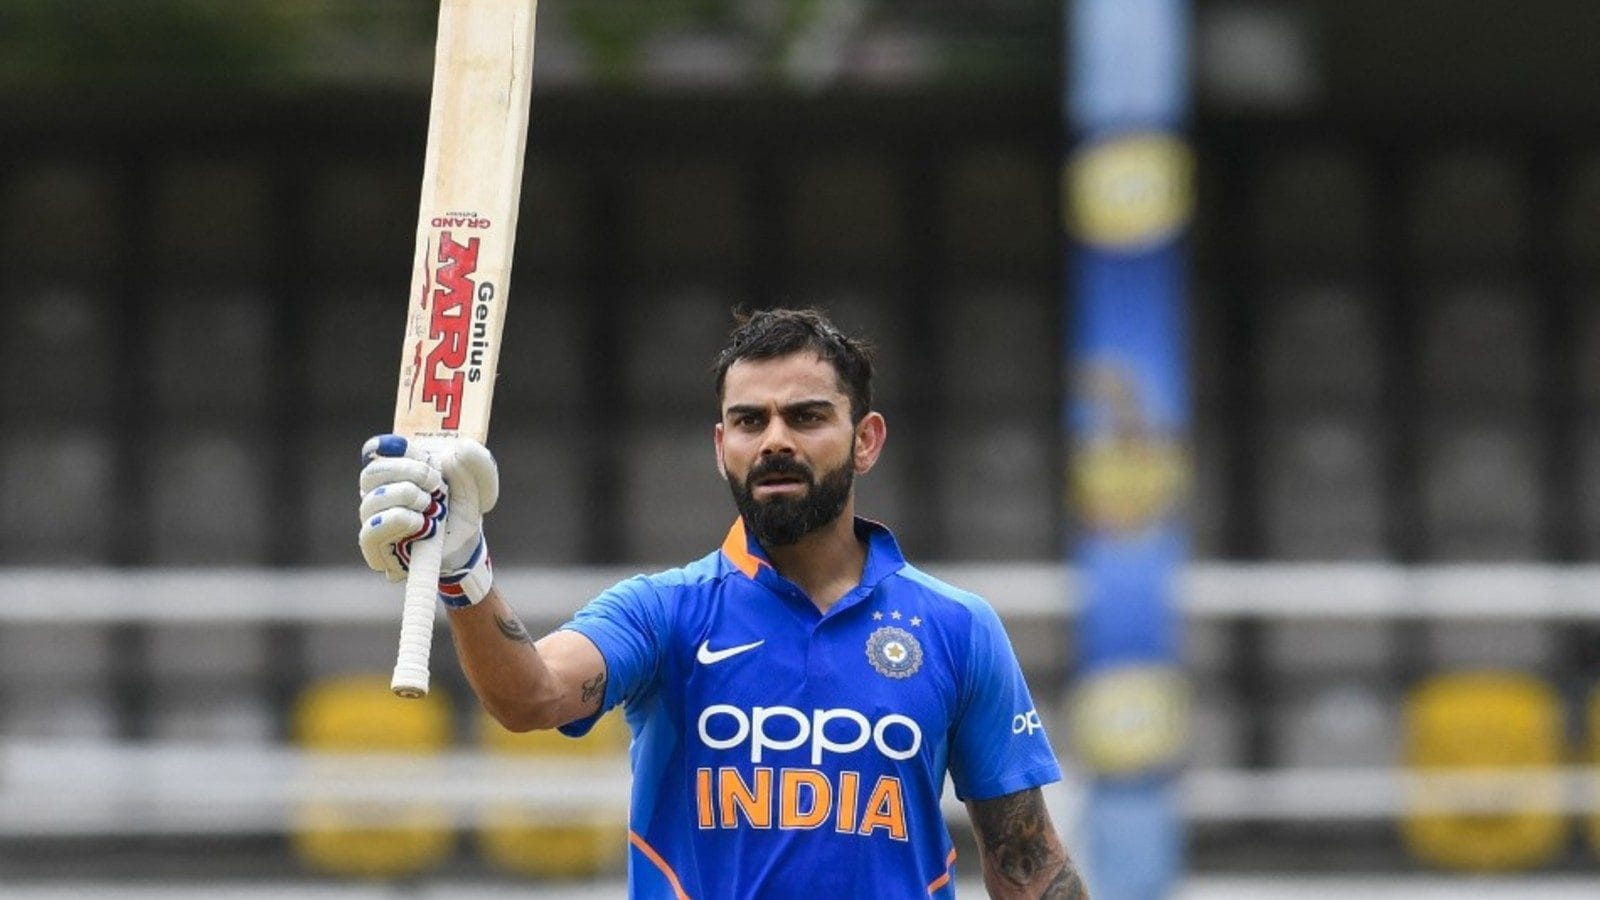 Virat Kohli to Step Down as T20 Caption: 5 Investment Lessons to Learn from King Kohli